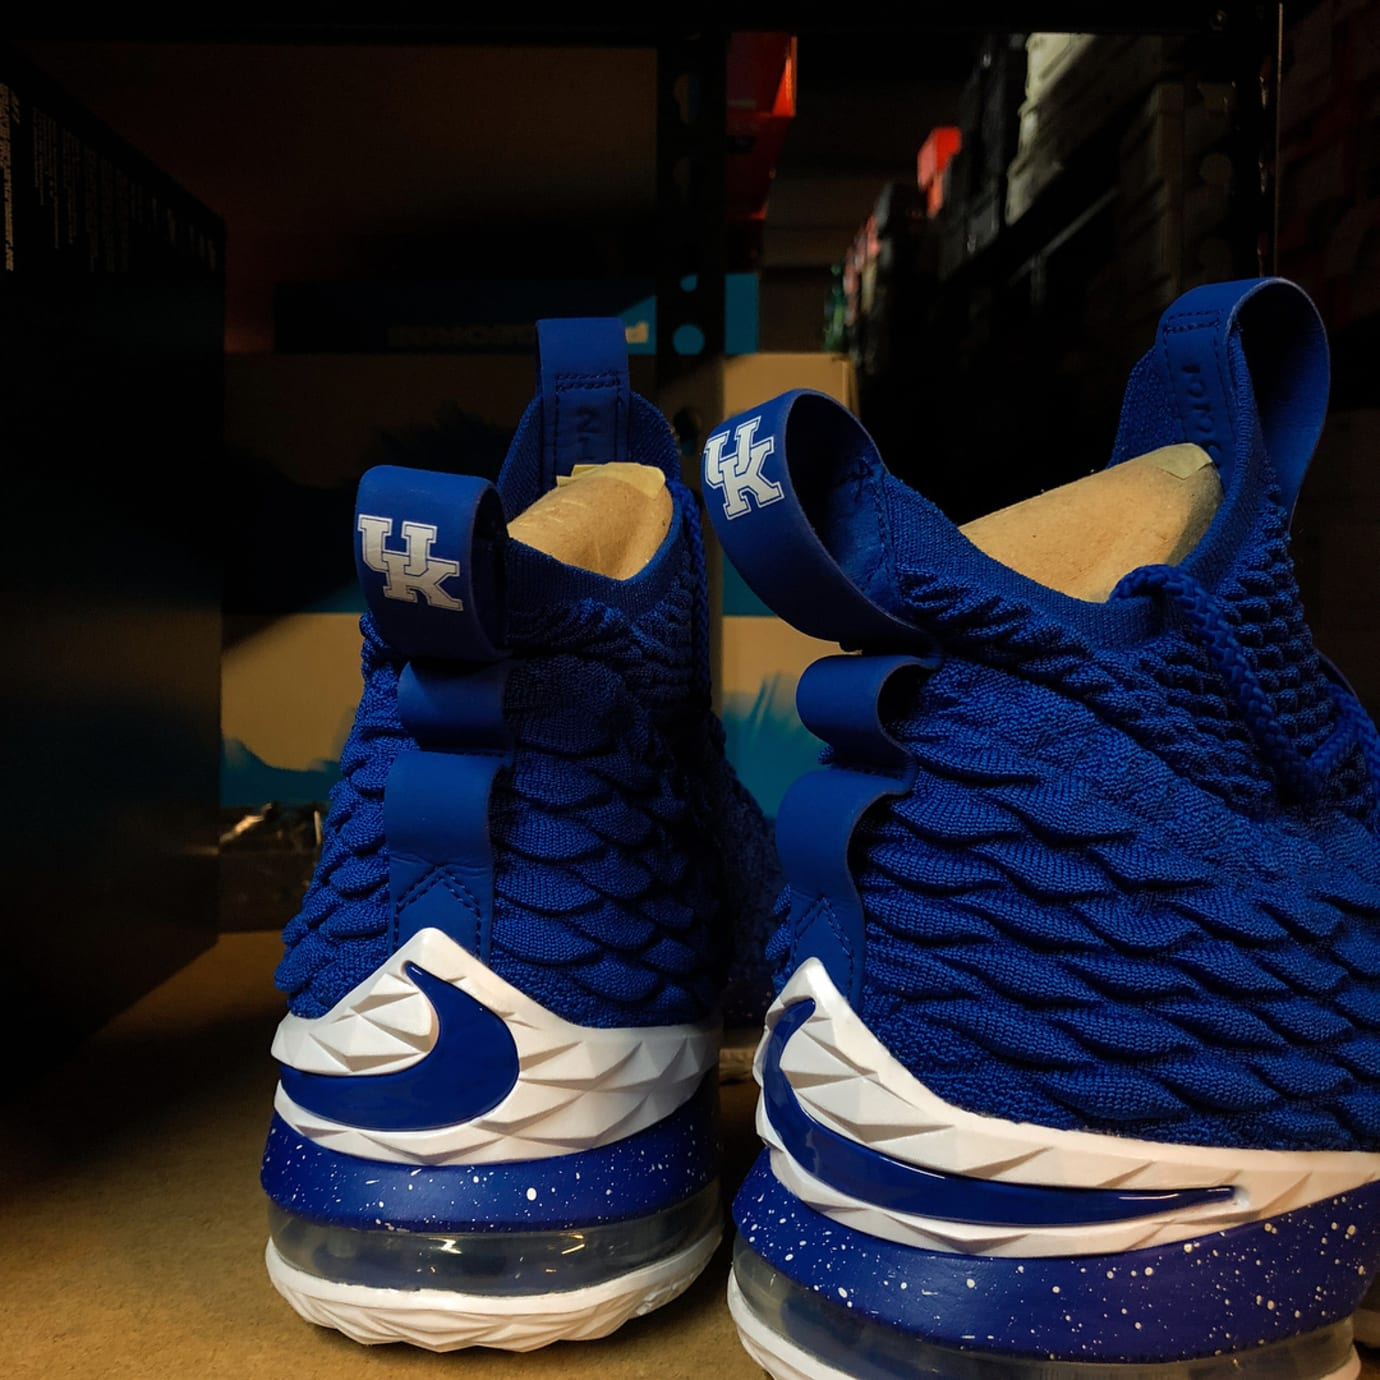 Kentucky Wildcats Nike Shoes Sale